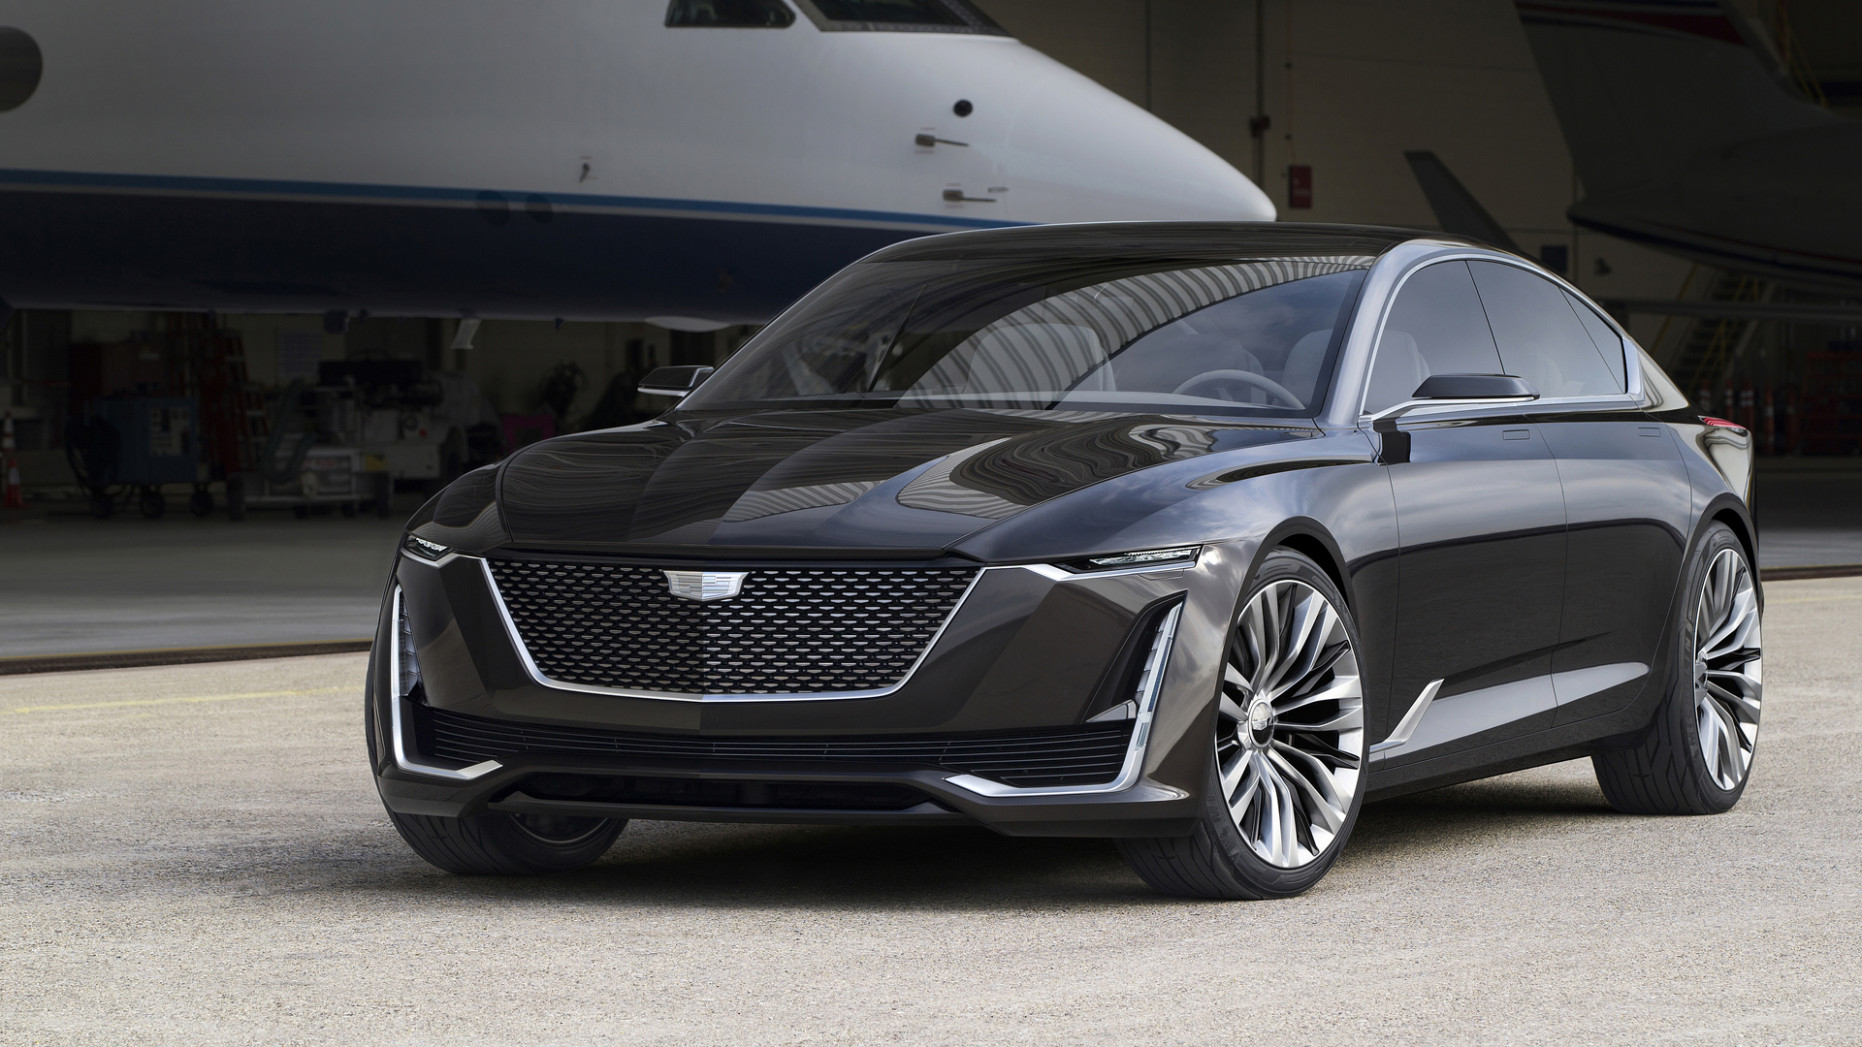 Review When Will The 2022 Cadillac Xt5 Be Available